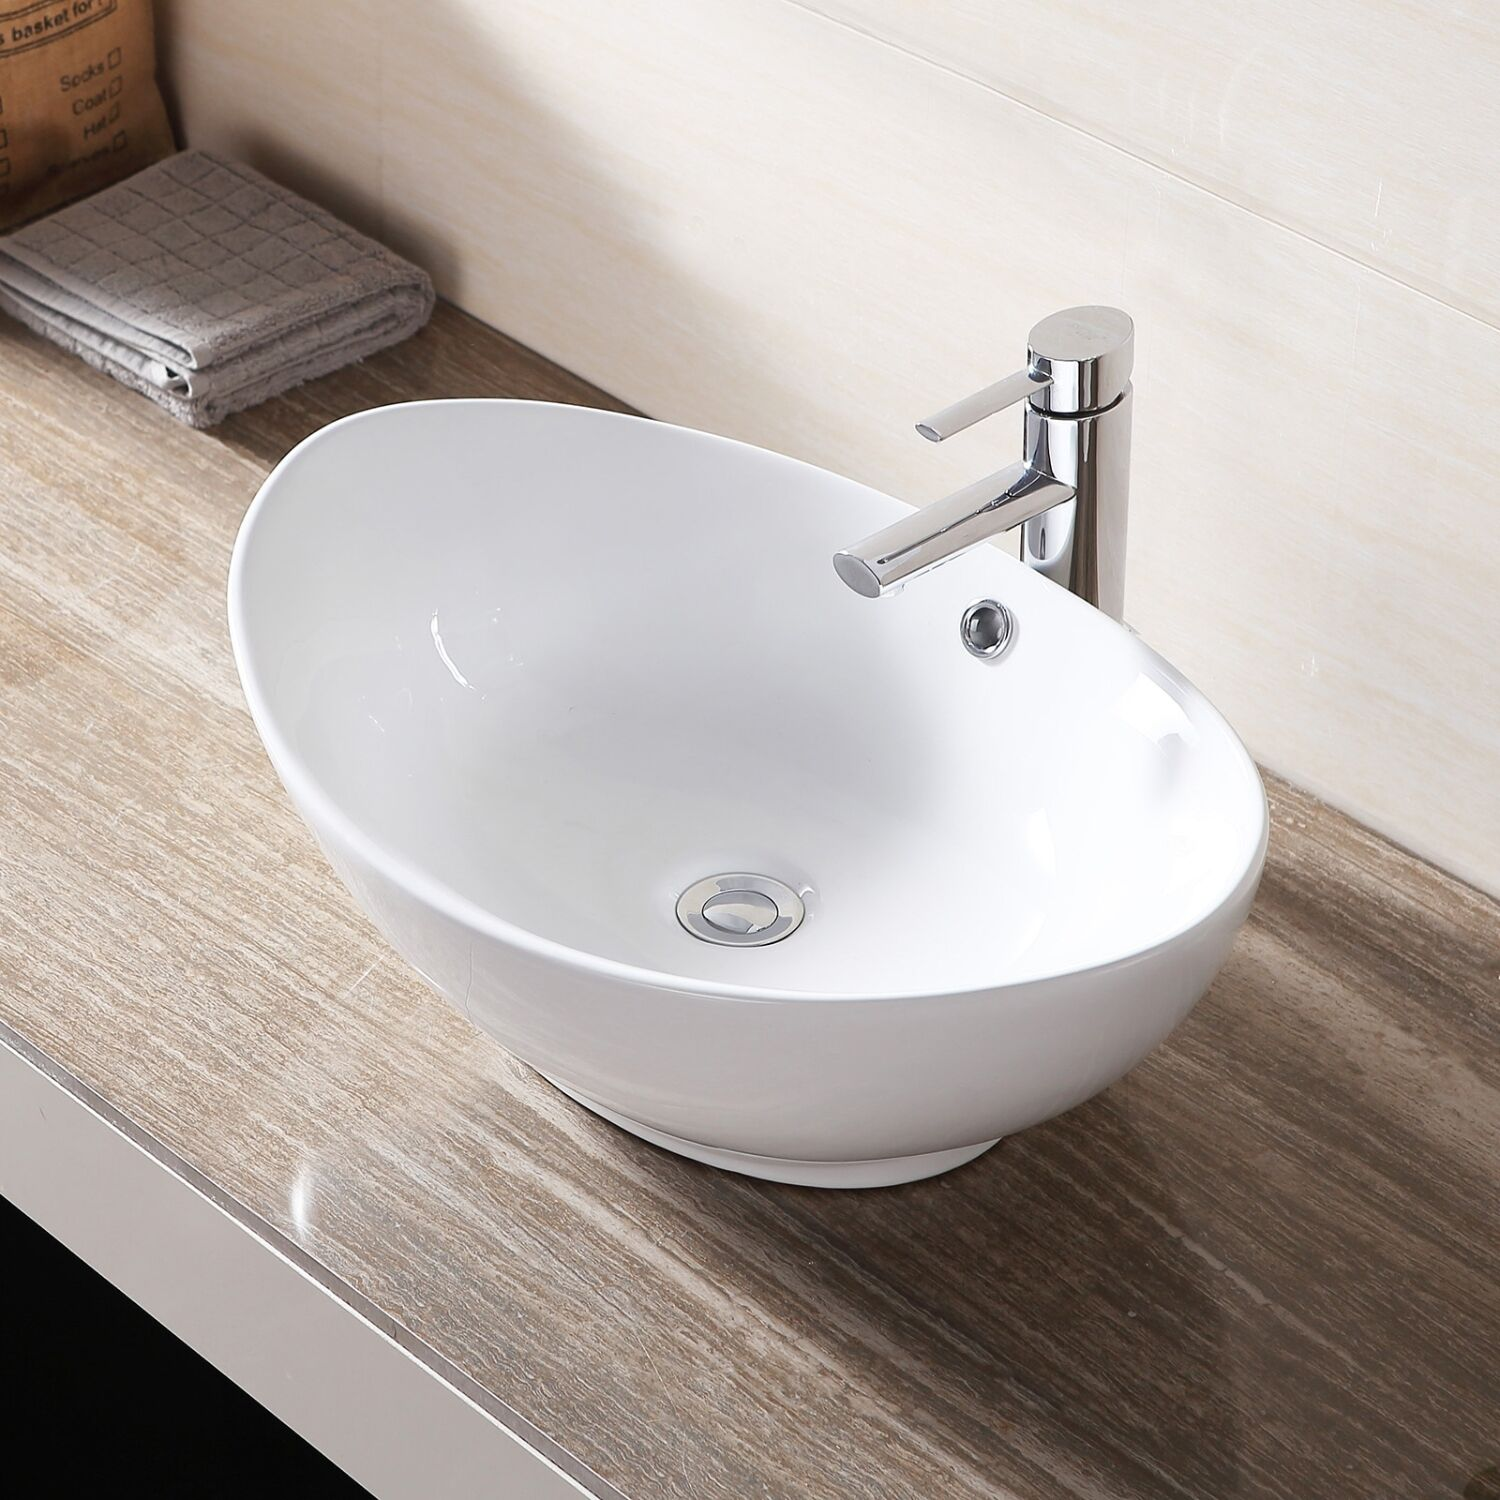 basin sink bathroom white porcelain ceramic bathroom sink vessel vanity basin 10186